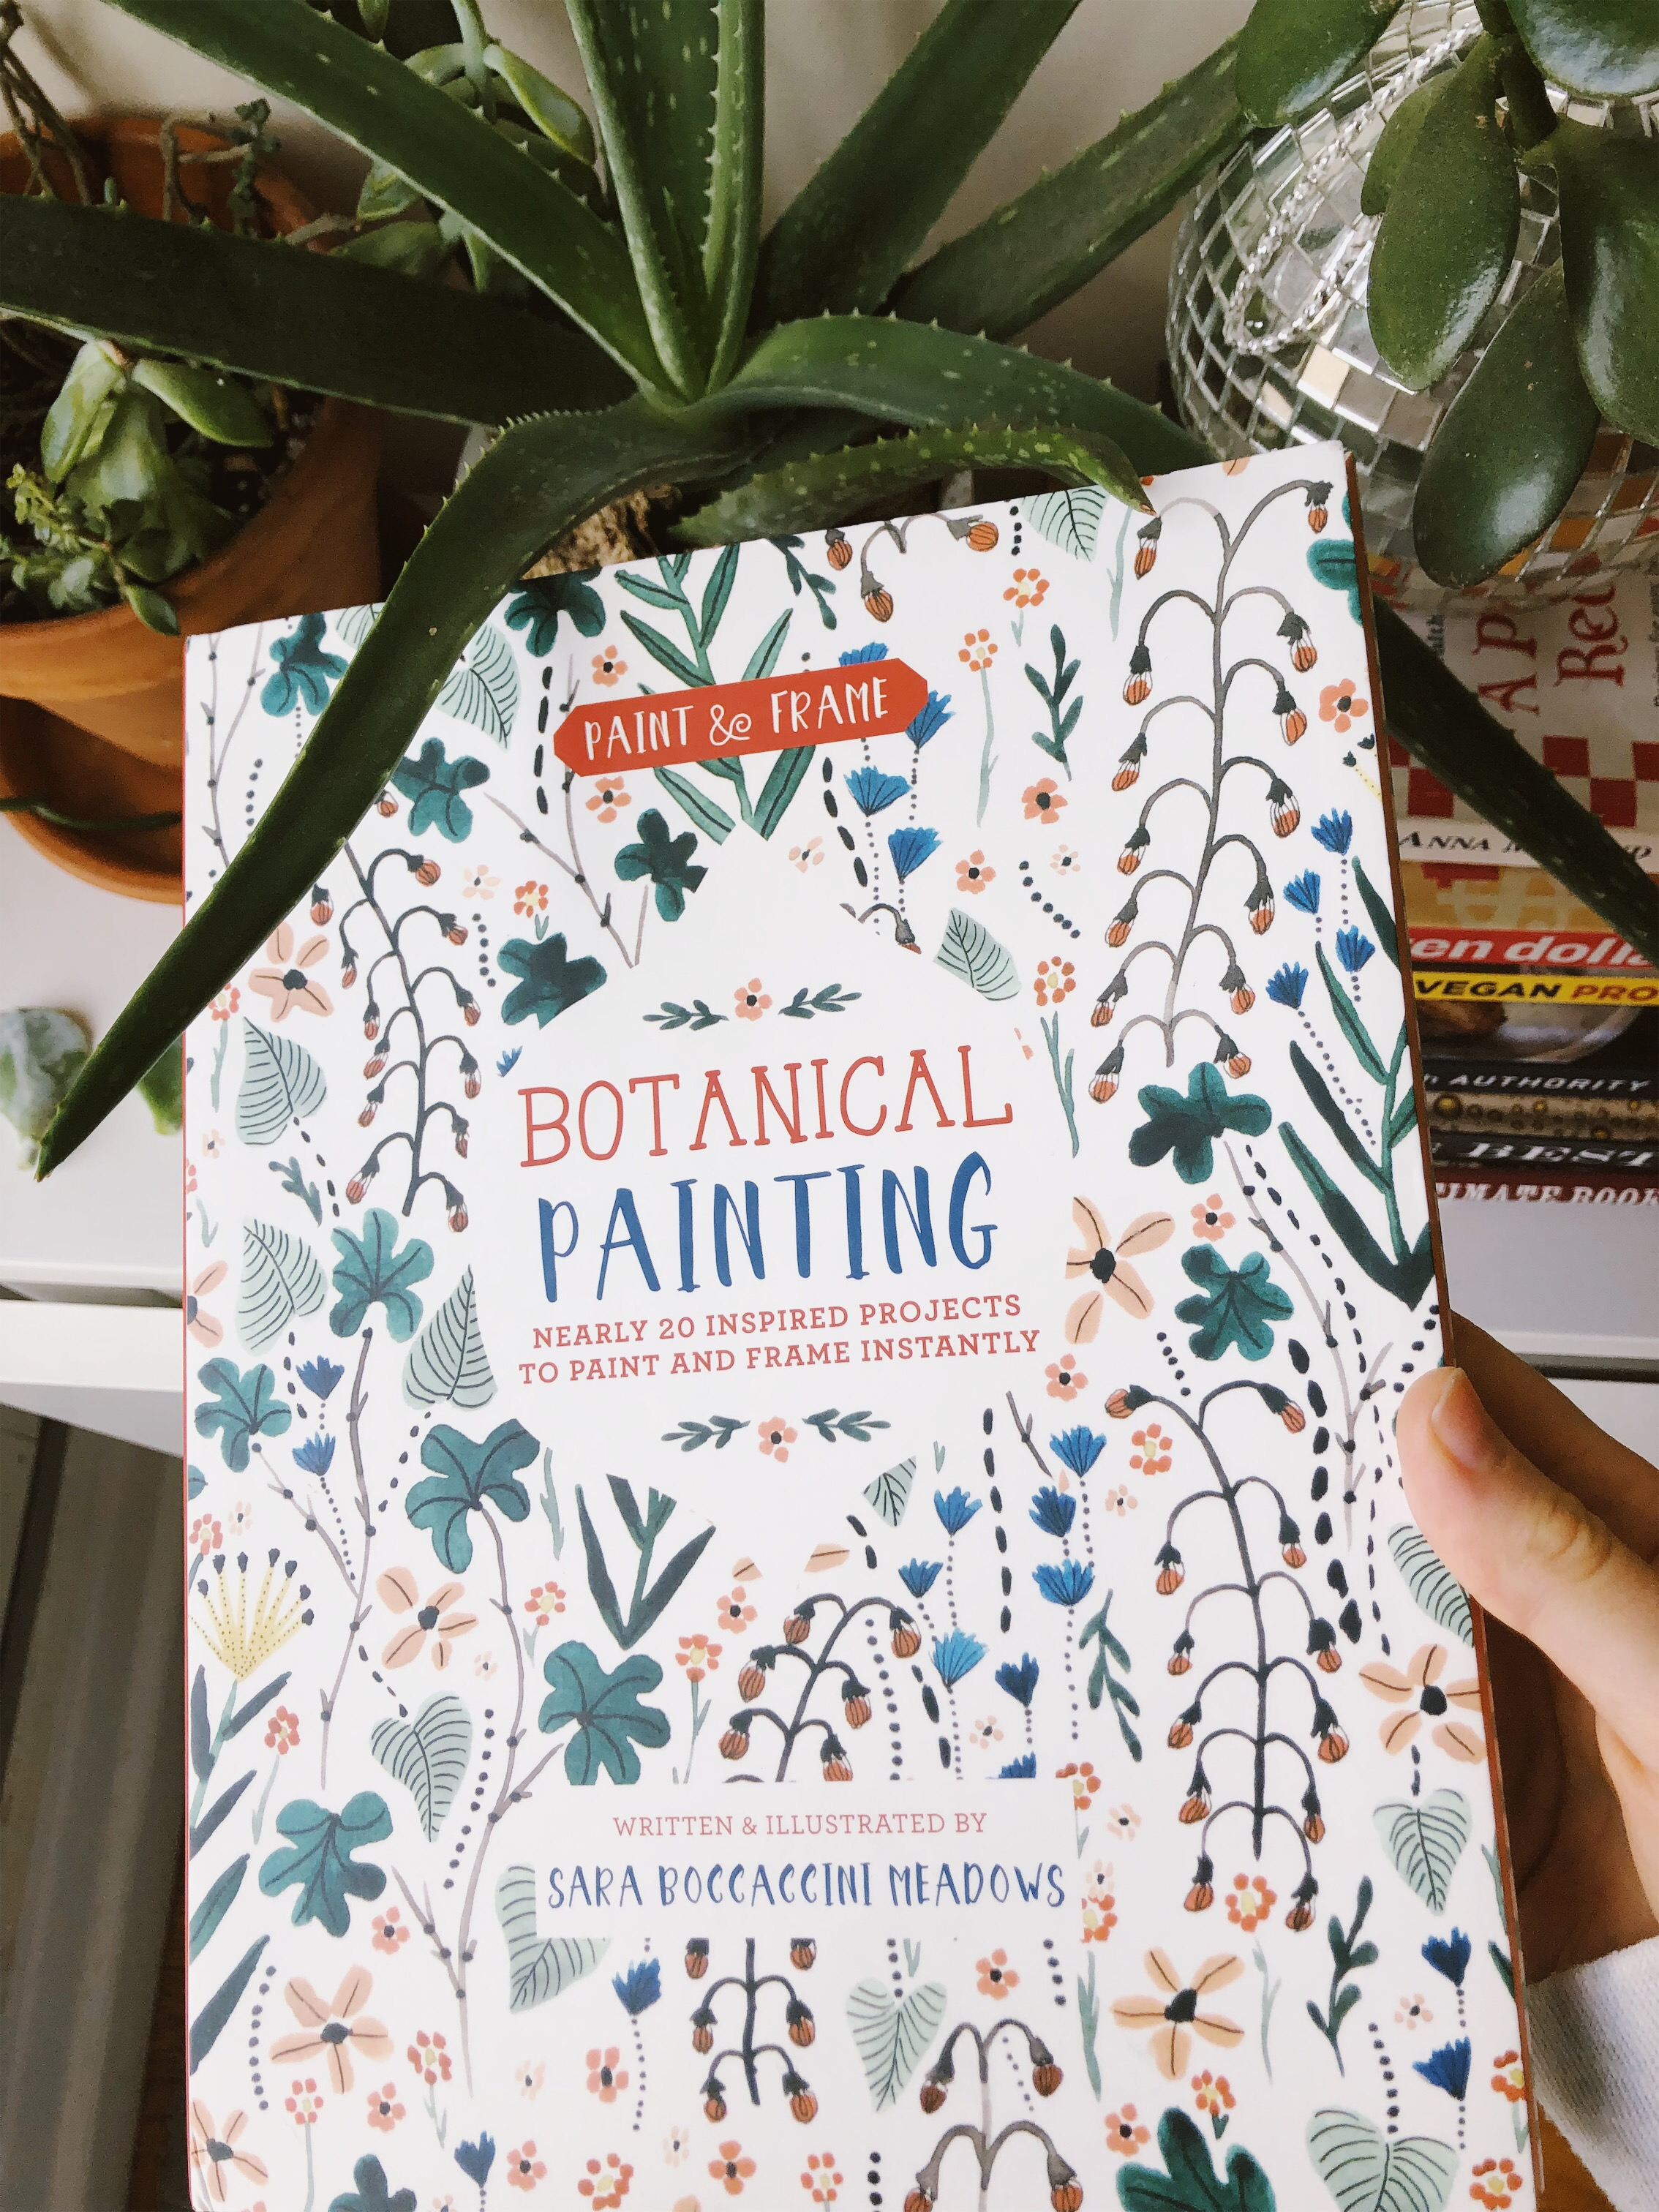 """A """"how to"""" book from Sara Boccaccini Meadows for my mom. We can't wait to learn botanical painting!"""